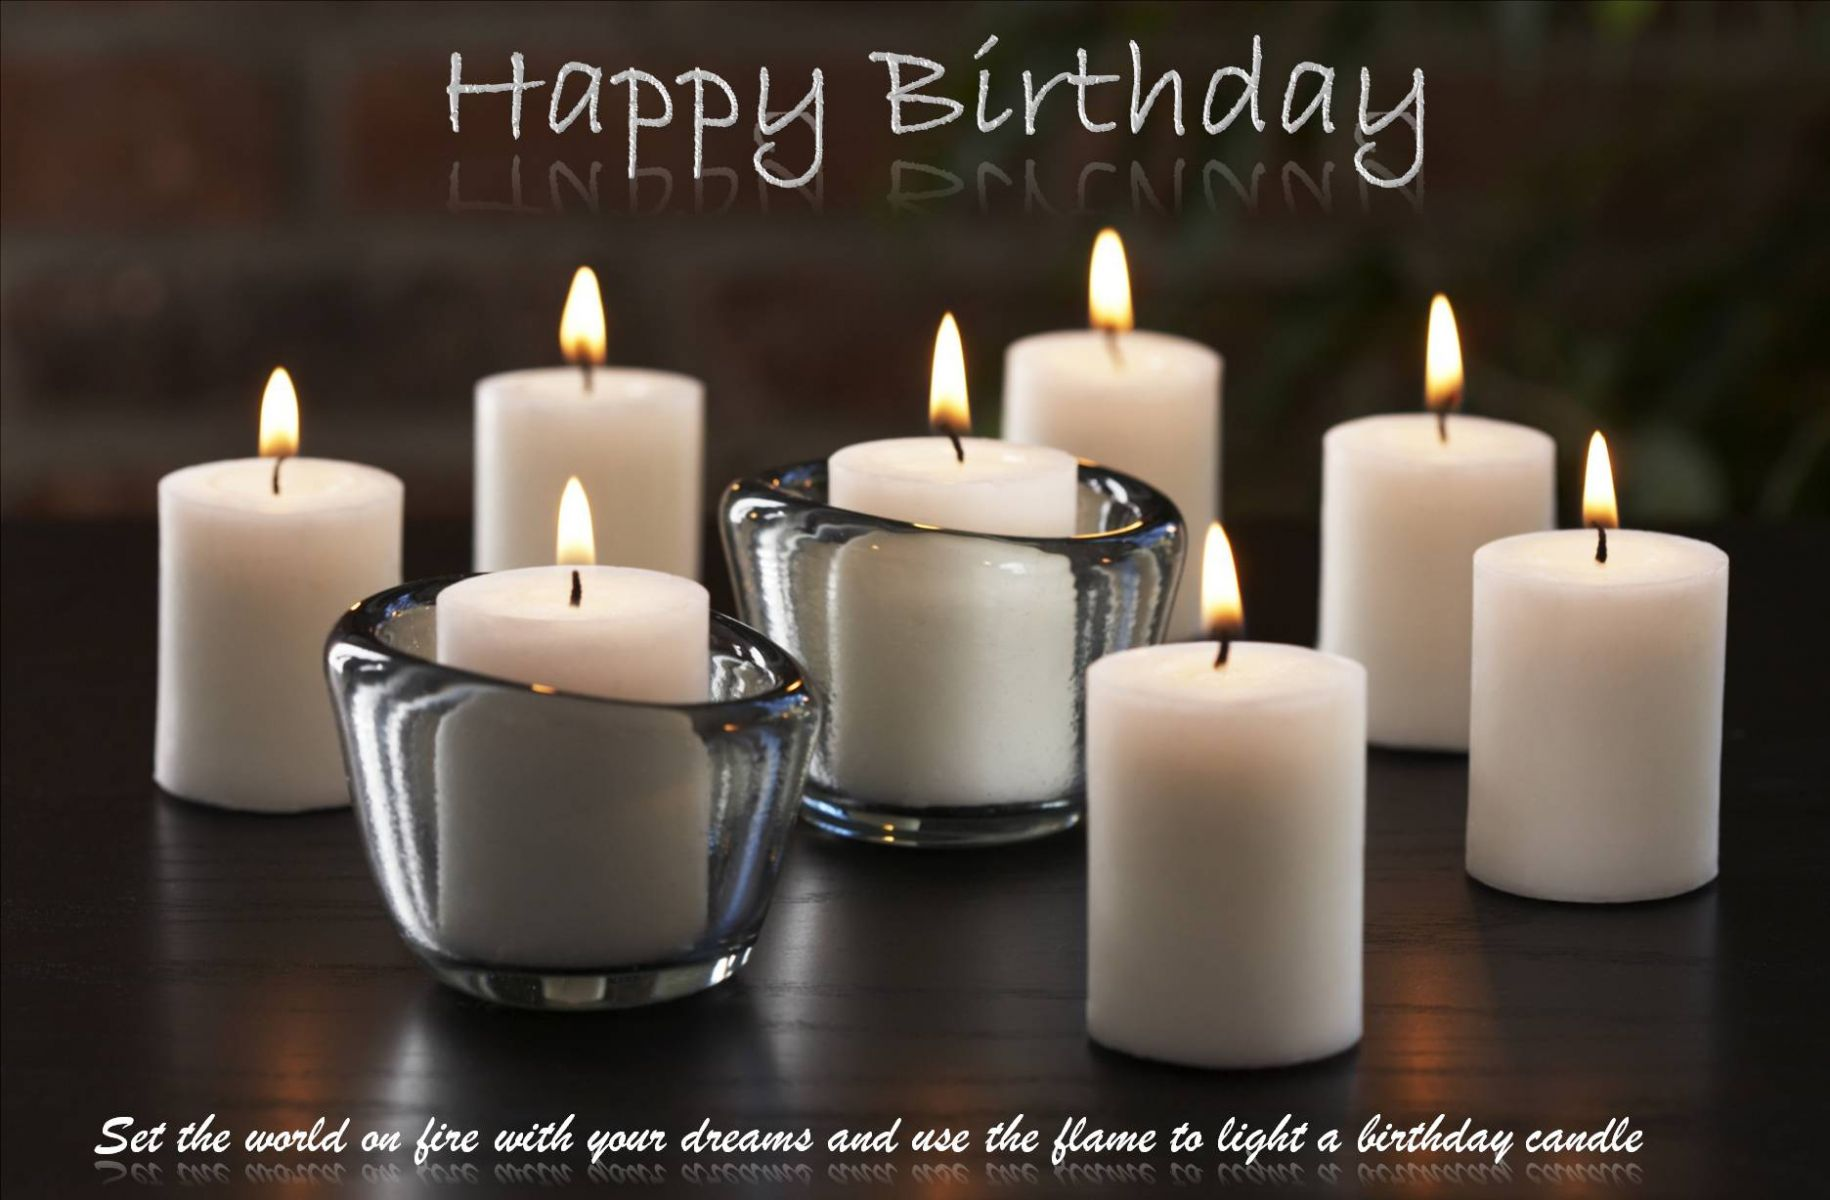 happy birthday wishes wallpaper hd ; happy-birthday-quote-to-friend-hd-wallpaper-WSW3027418